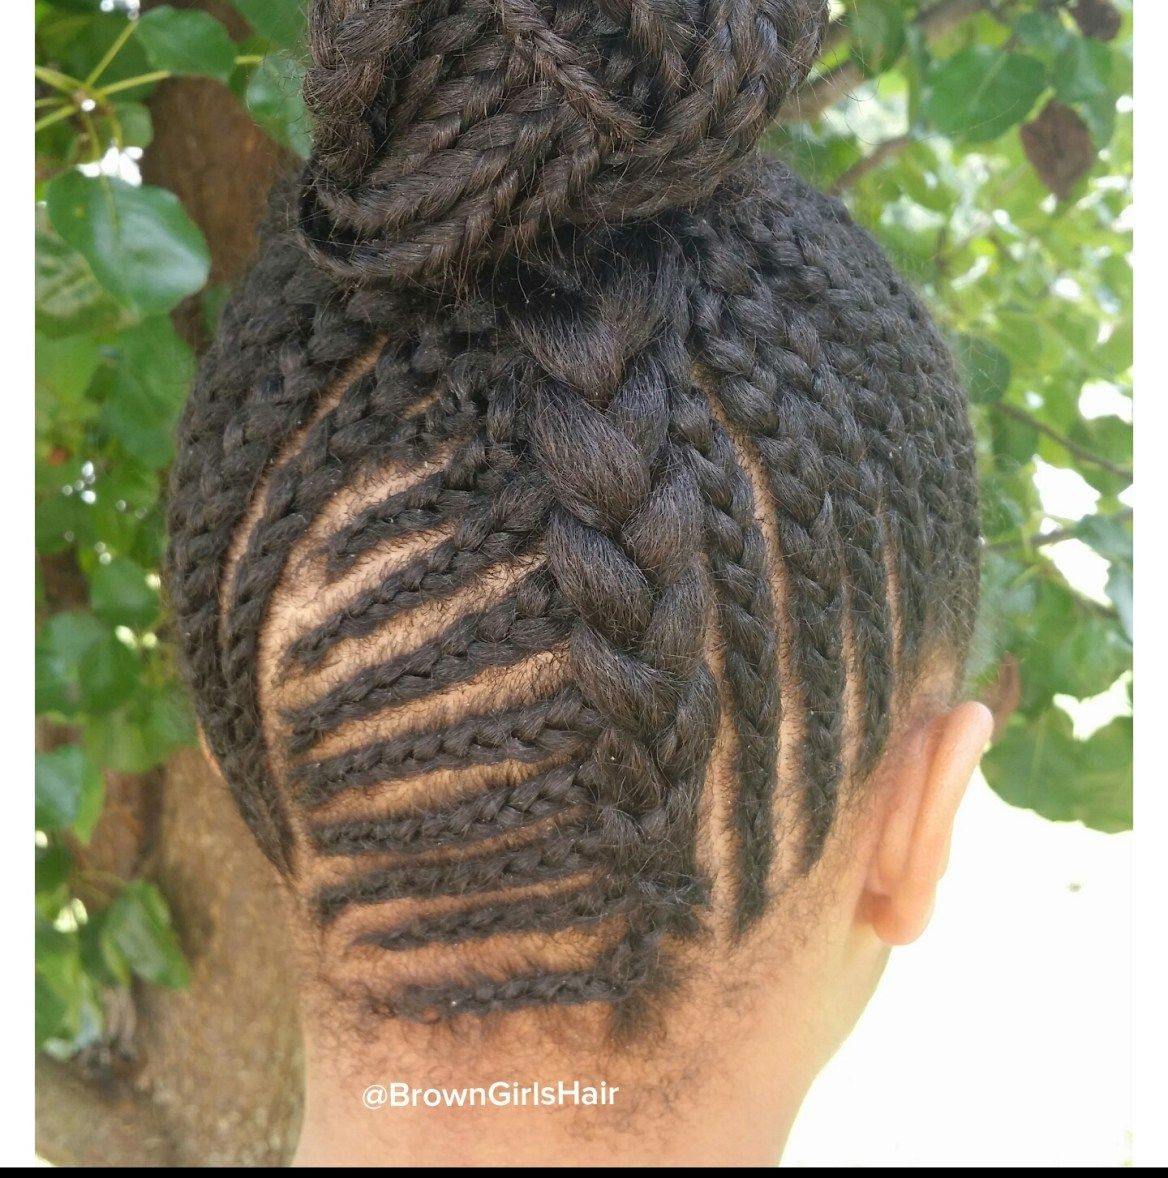 Brown girls hair braids kids african american hairstyles